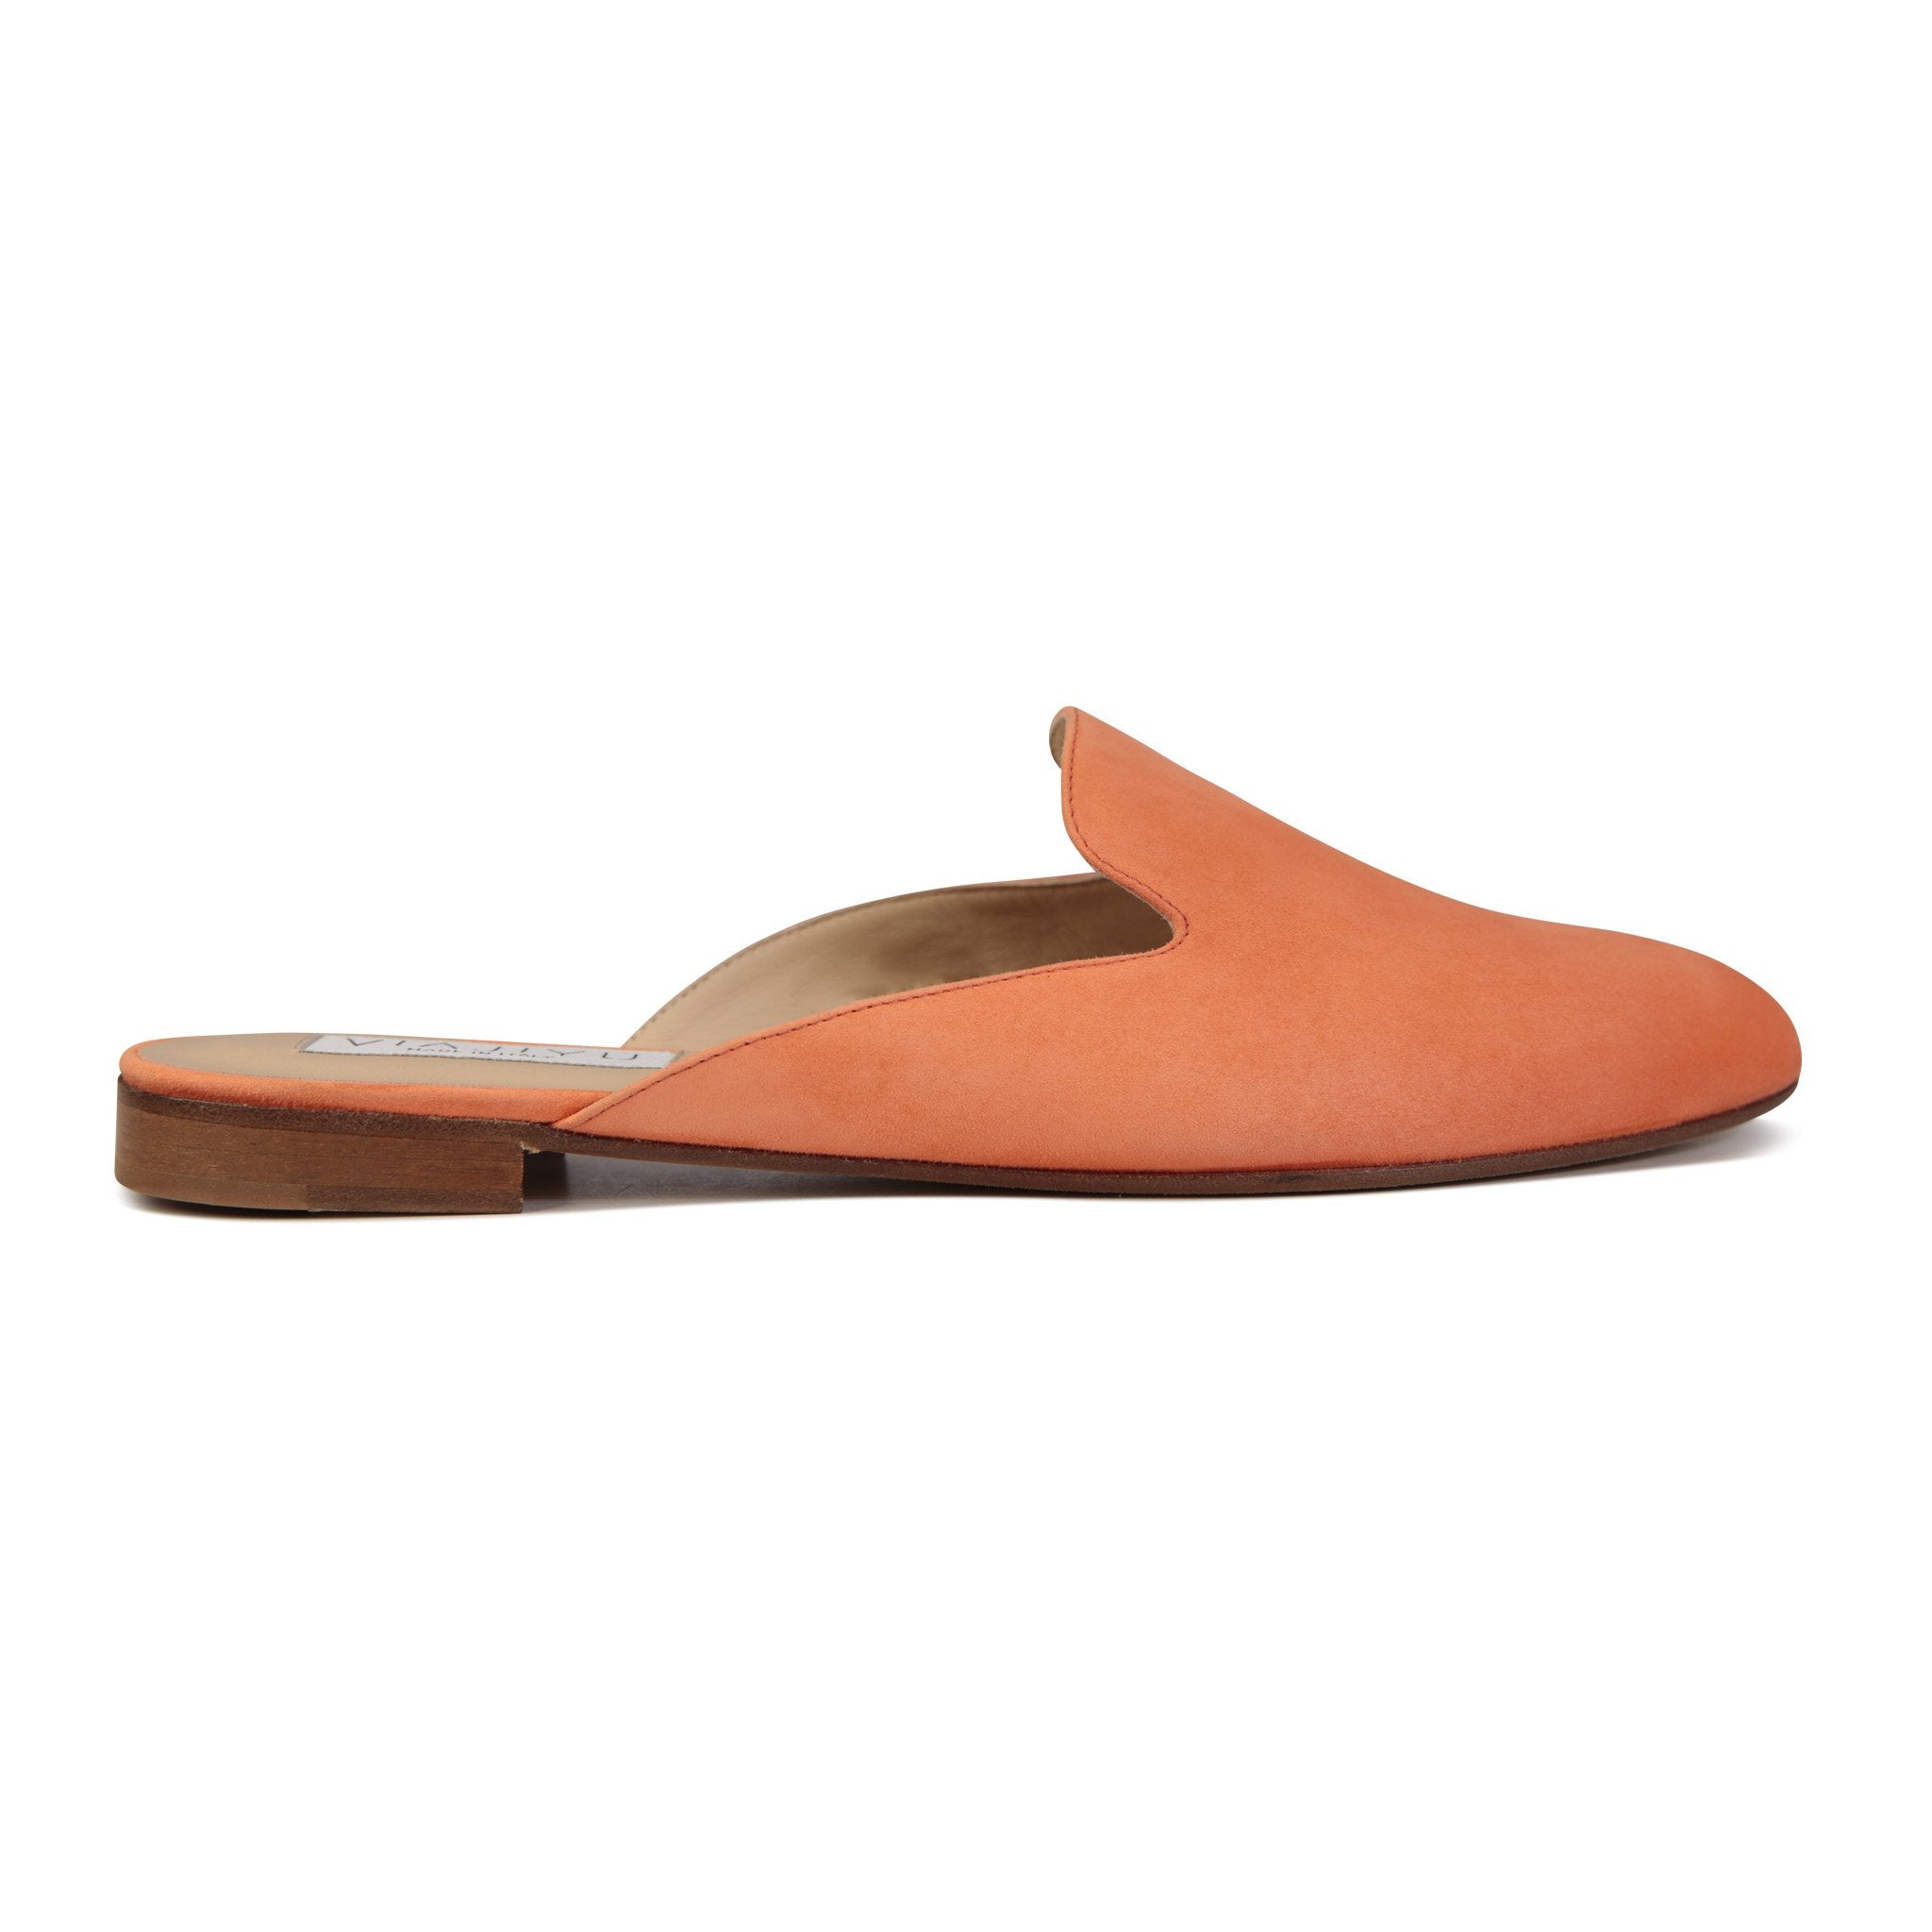 ISEO - Velukid Mandarin, VIAJIYU - Women's Hand Made Sustainable Luxury Shoes. Made in Italy. Made to Order.